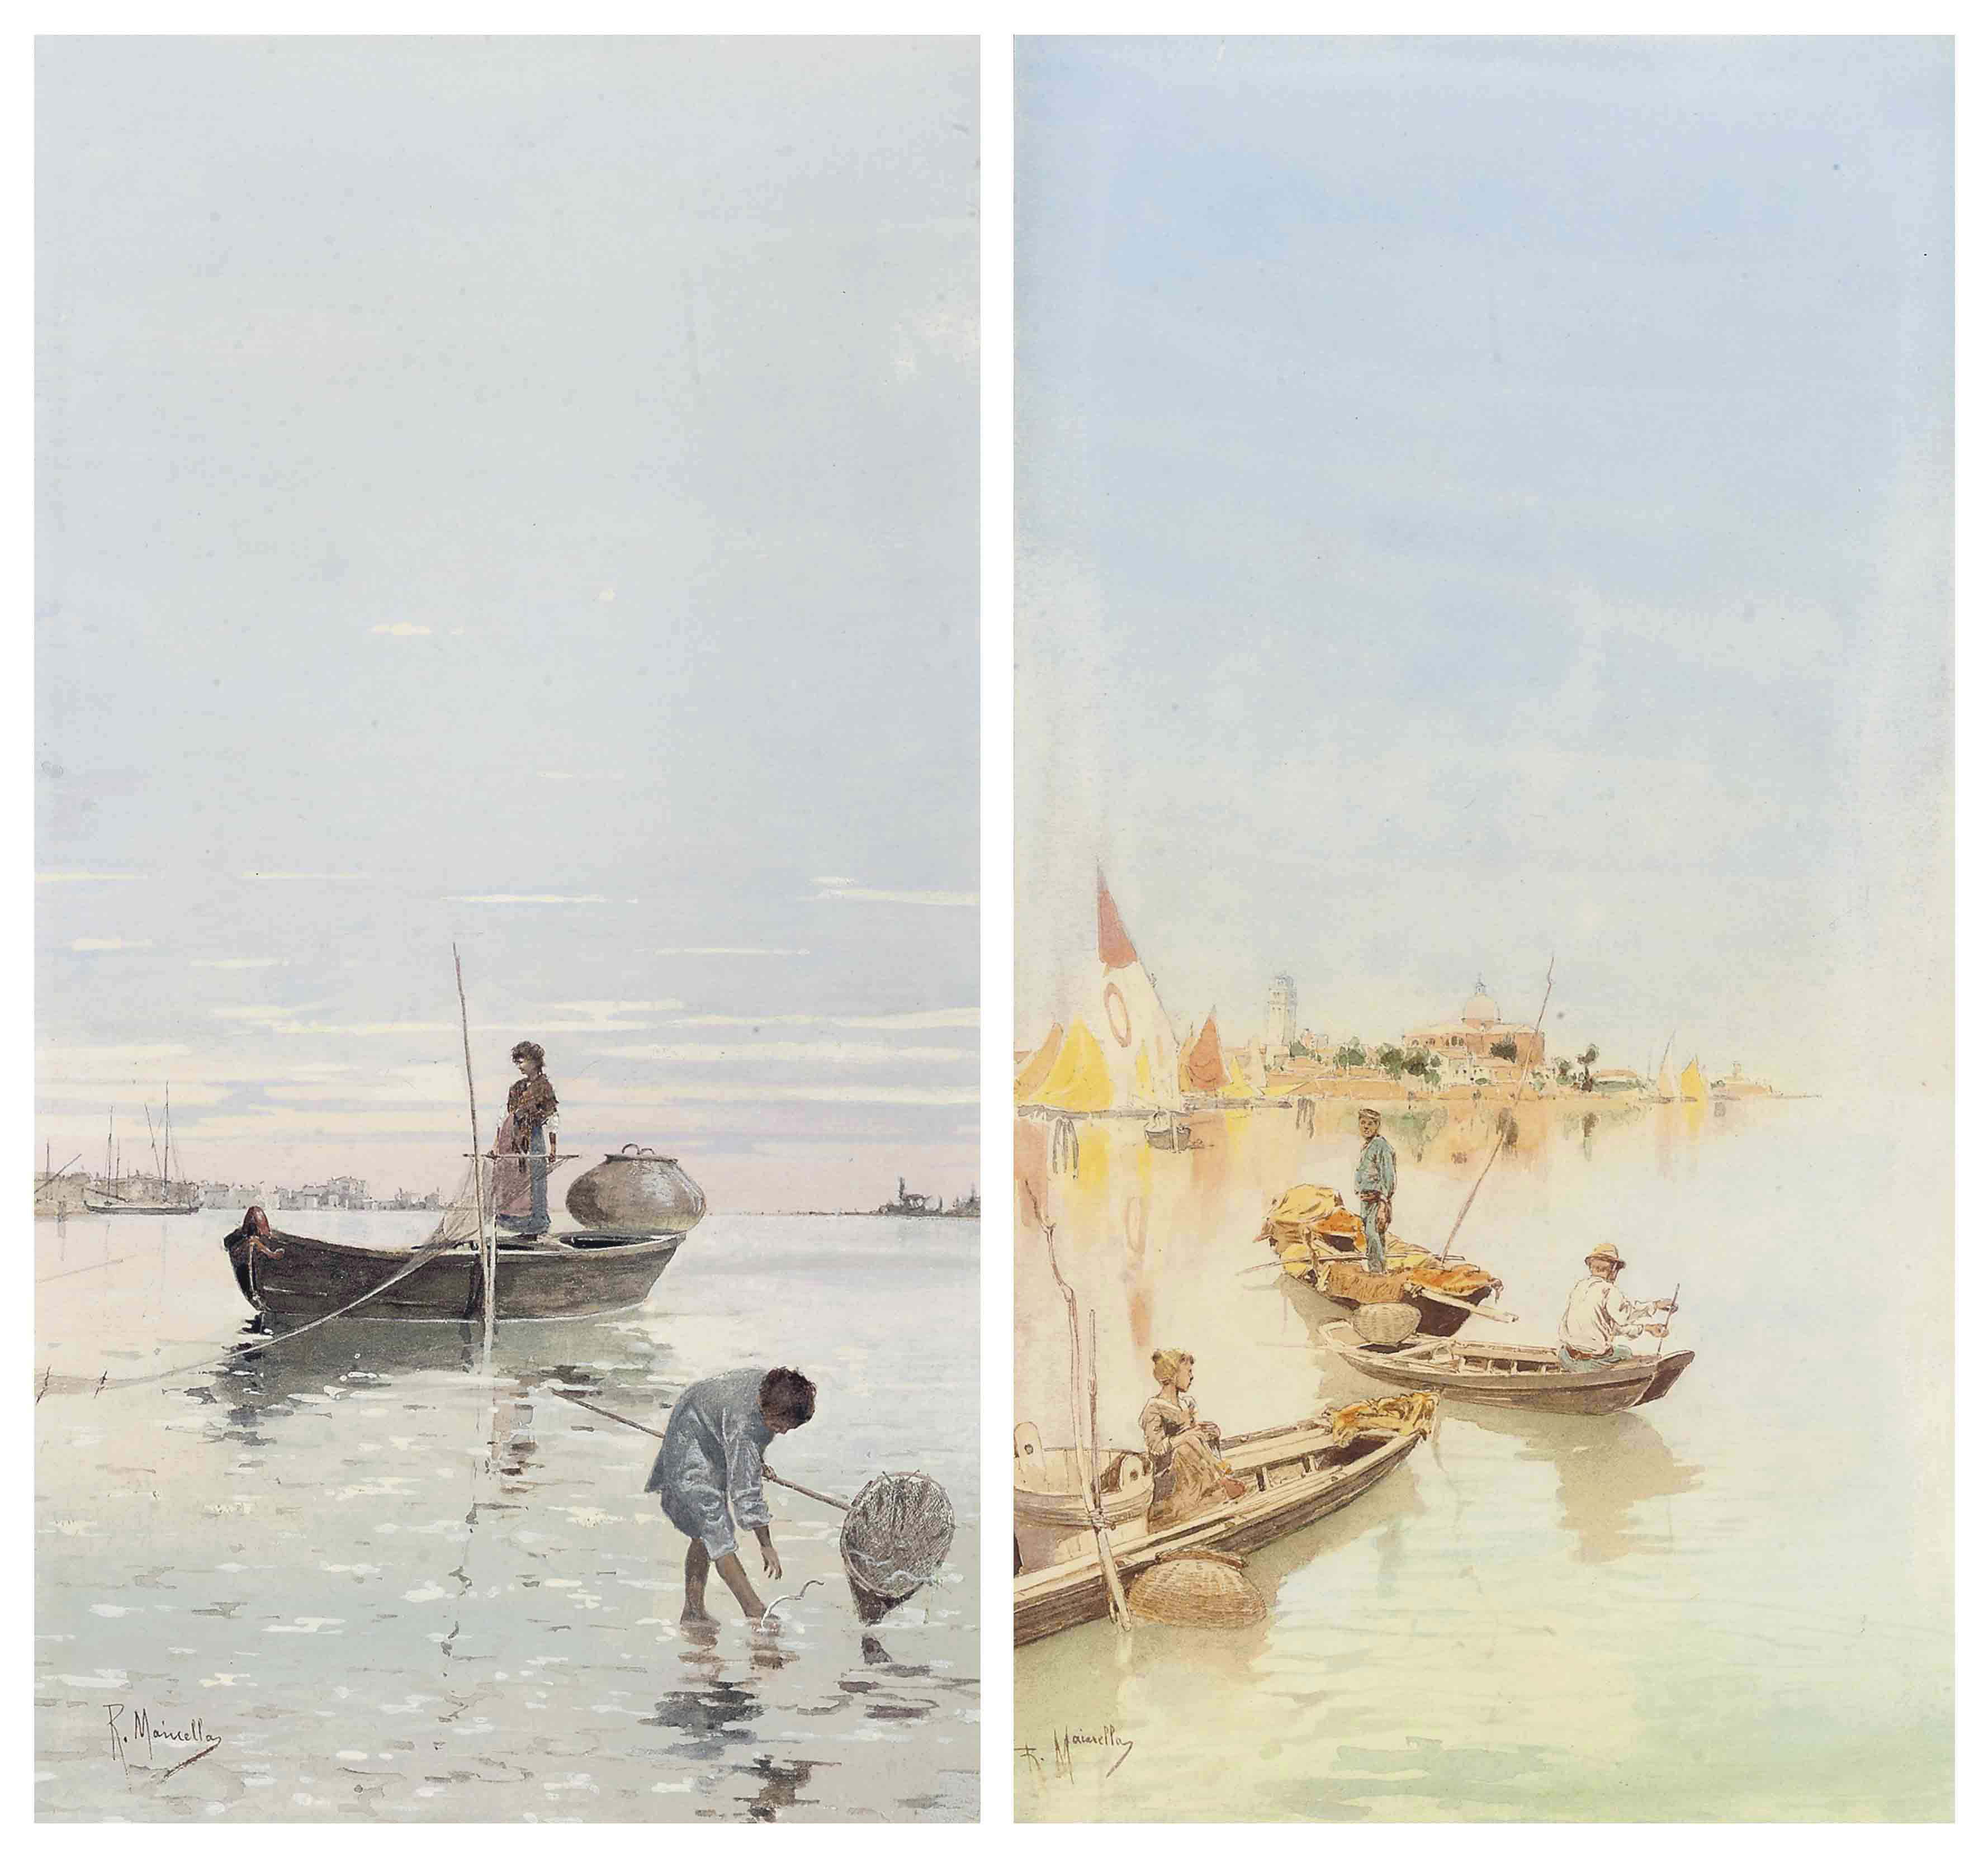 Fishing on the Venetian lagoon; and Another similar